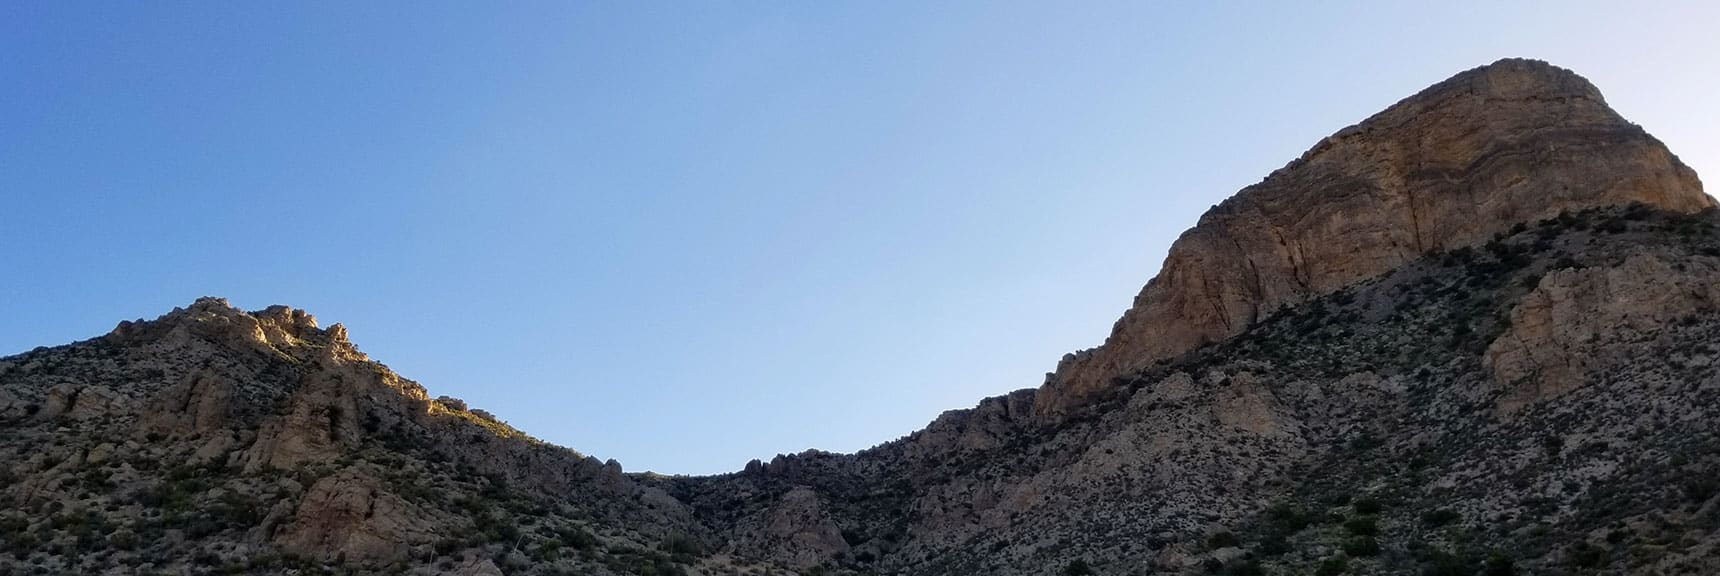 Turtlehead Peak and Saddle in Red Rock National Park, Nevada